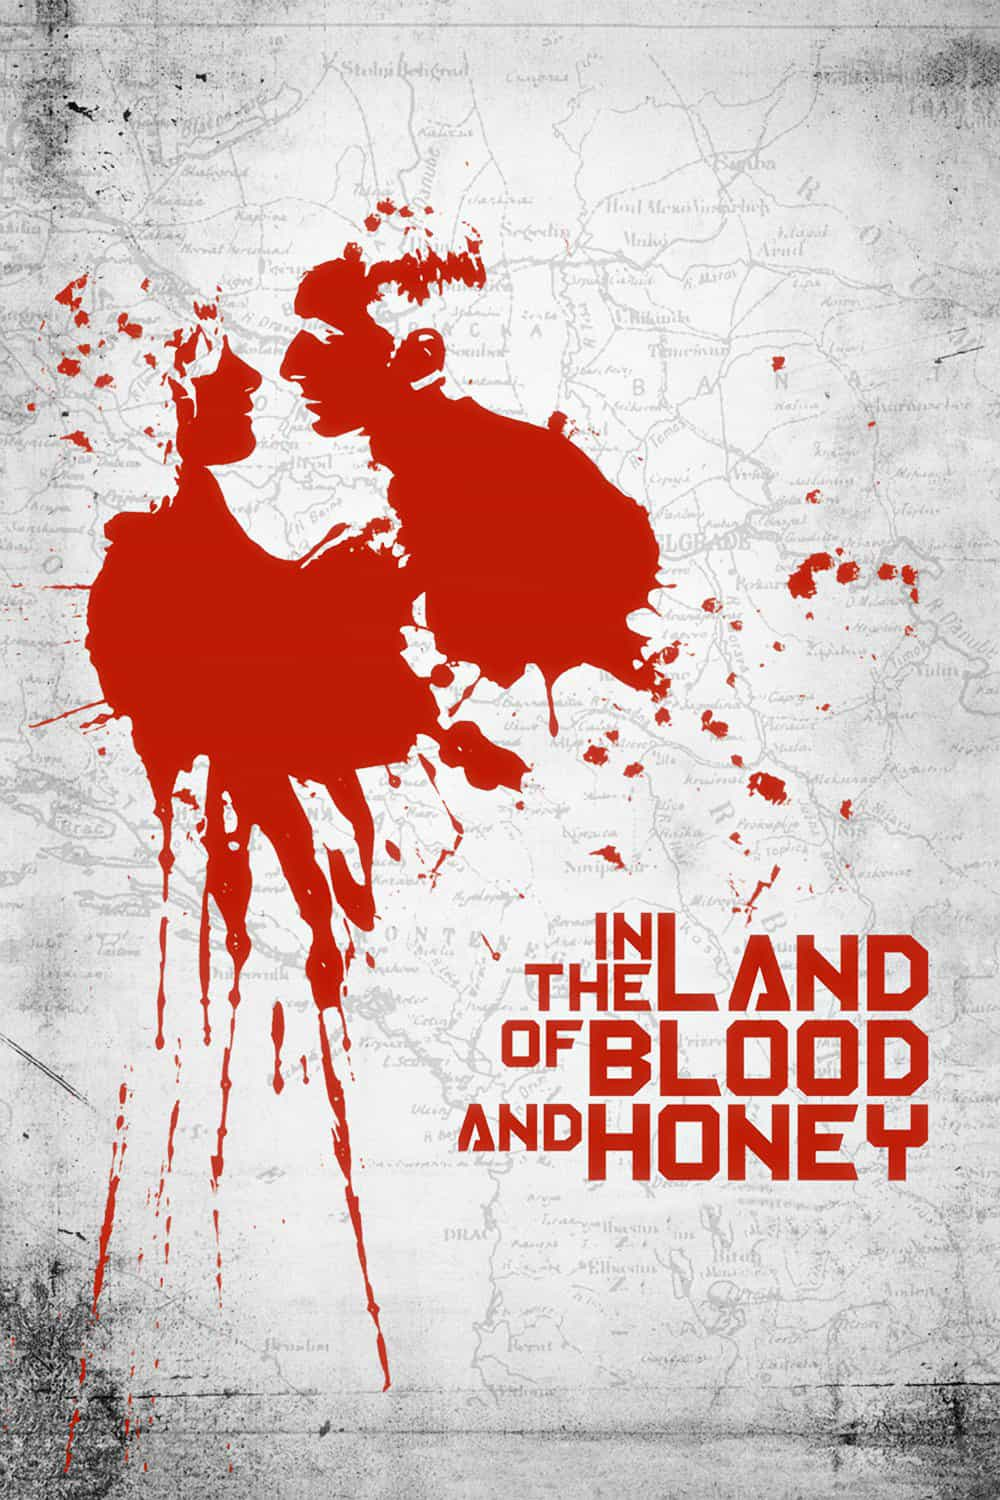 In the Land of Blood and Honey, 2011